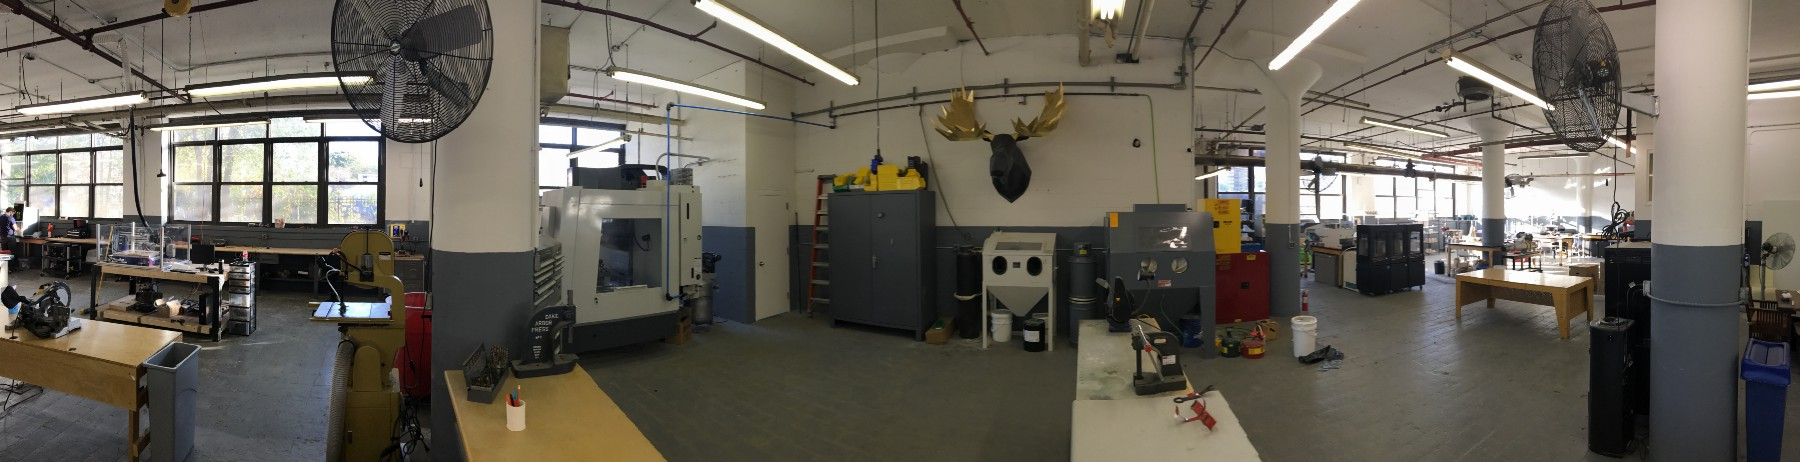 The workshop at Bre & Co